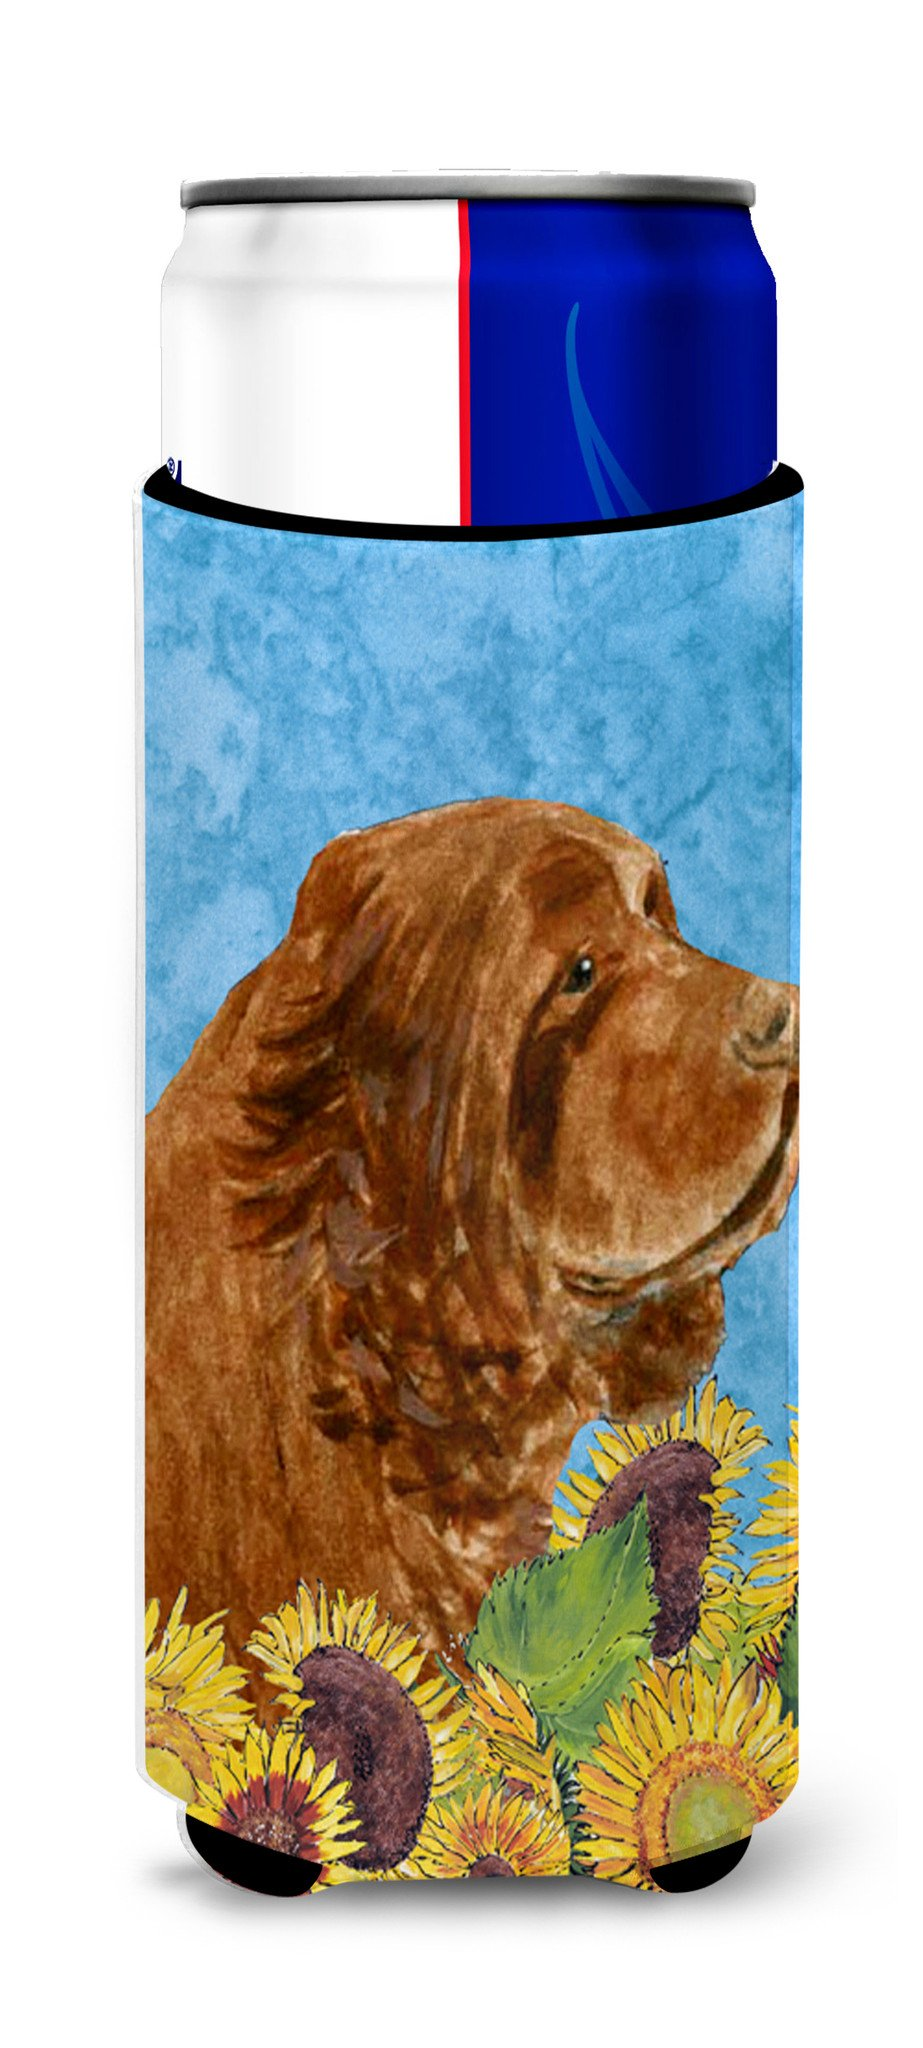 Sussex Spaniel in Summer Flowers Ultra Beverage Insulators for slim cans SS4143MUK by Caroline's Treasures